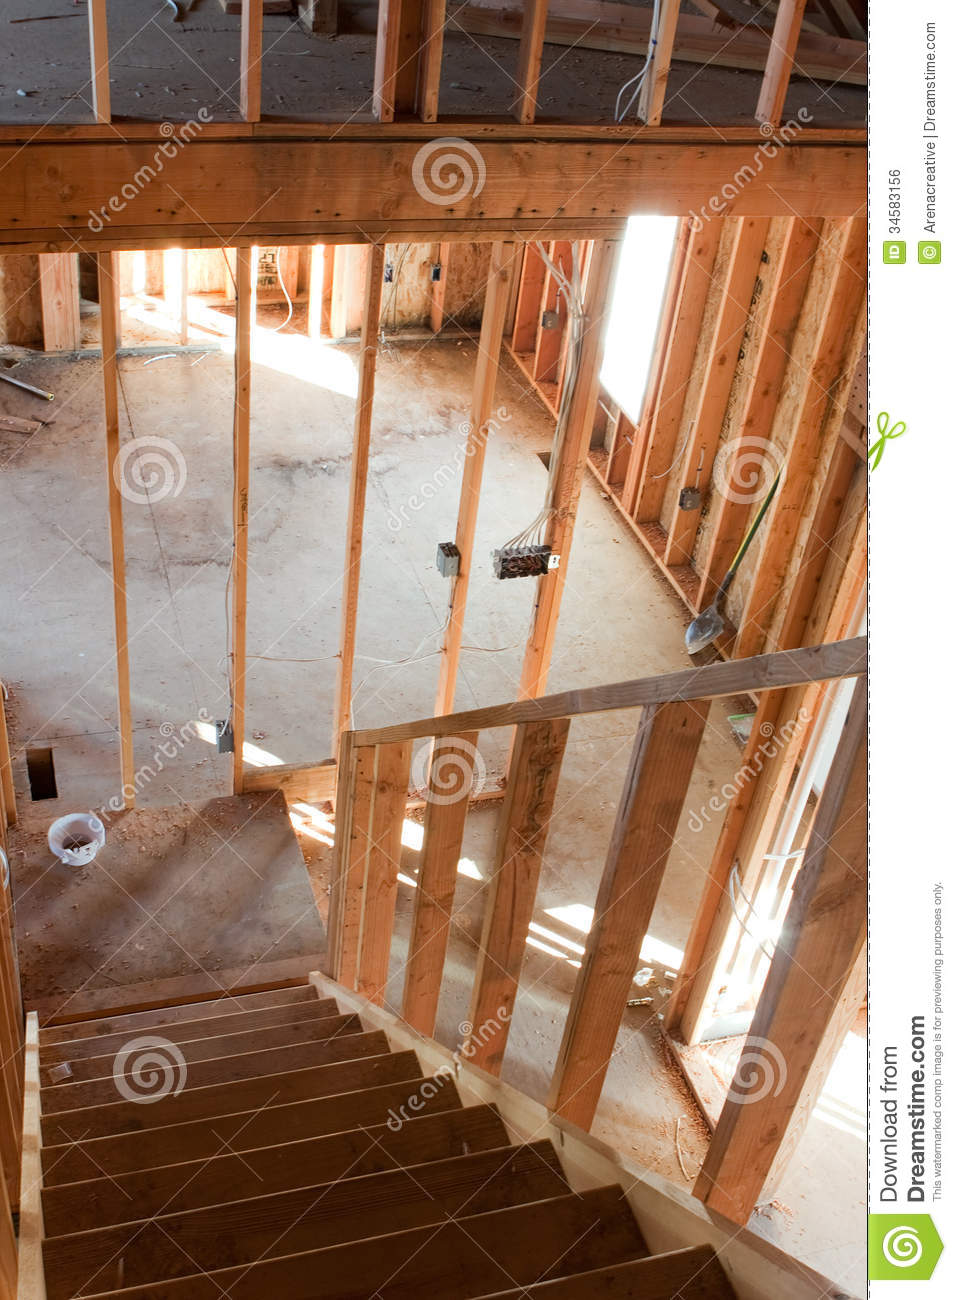 House Framing Interior Framed Building Residential Home Basic Electrical Wiring Hvac Complete on Basic Hvac Wiring